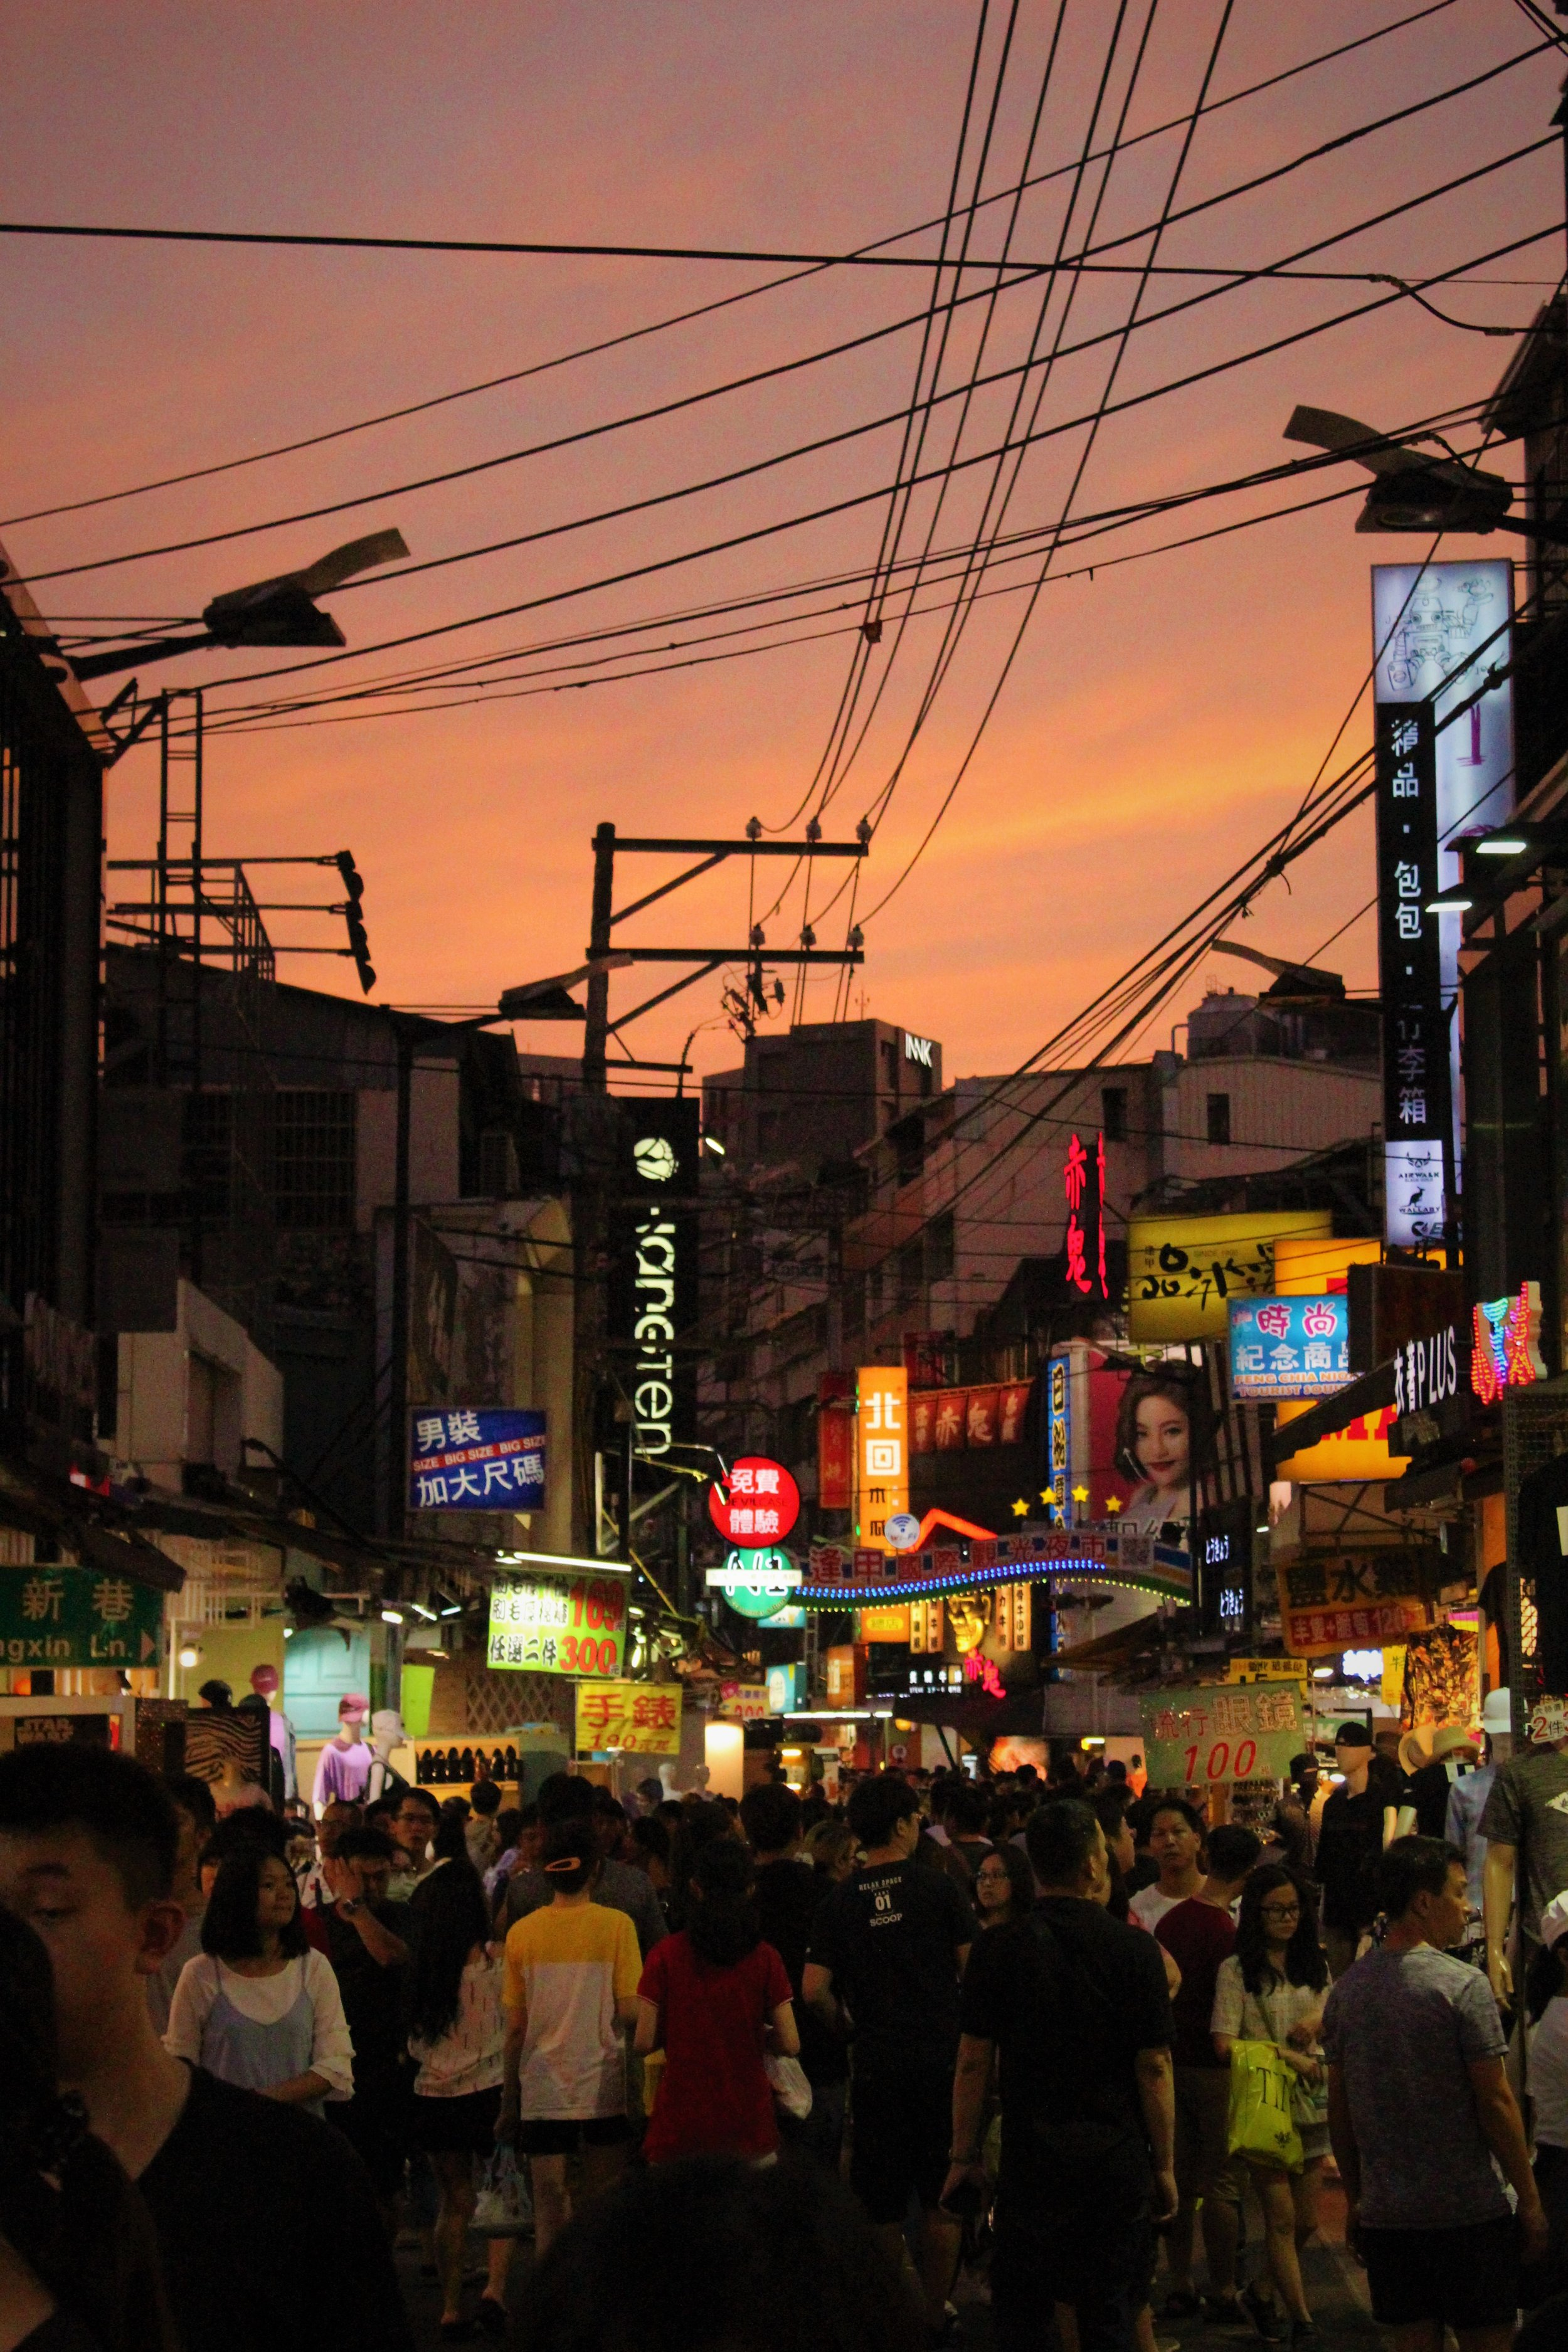 Taichung's Fengjia night market - one of Taiwan's biggest night markets, and a synaesthetic assault everyone should experience at least once.  The list of things to buy and games to play could go on forever, but as a taster, over five hours, food sampled included fried sweet potato balls, stinky tofu, perfectly seasoned grilled mushroom, cheesy potato, taro, douhua - a sweet tofu substance, and finally a bowl of refreshing shaved ice to round off a humid night under Taiwan's setting sun.   Viola King Forbes